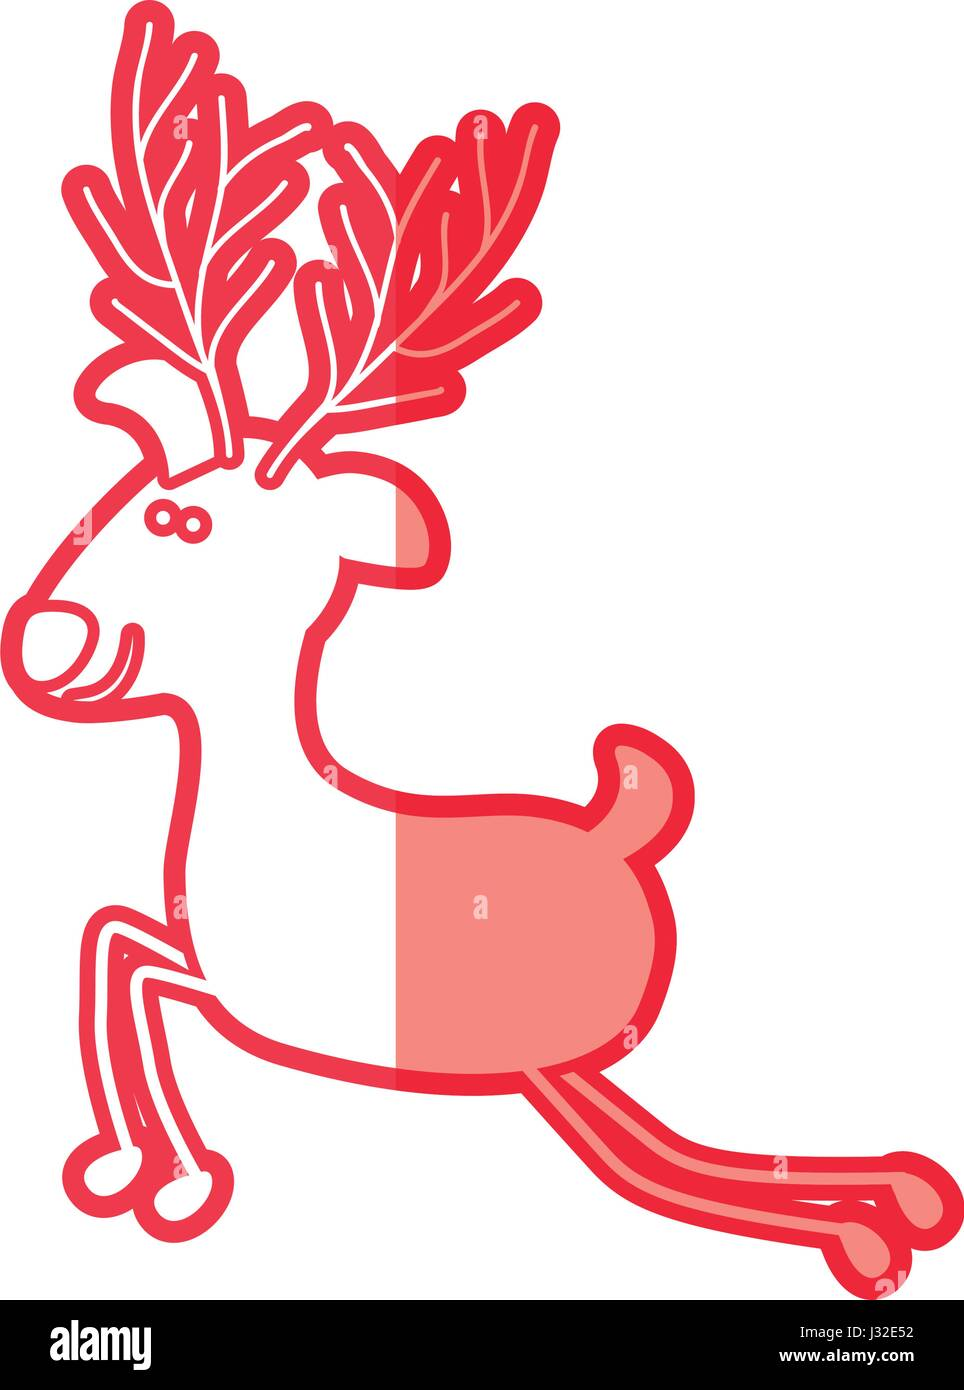 Red Silhouette Caricature Reindeer Stand Stockfotos & Red Silhouette ...